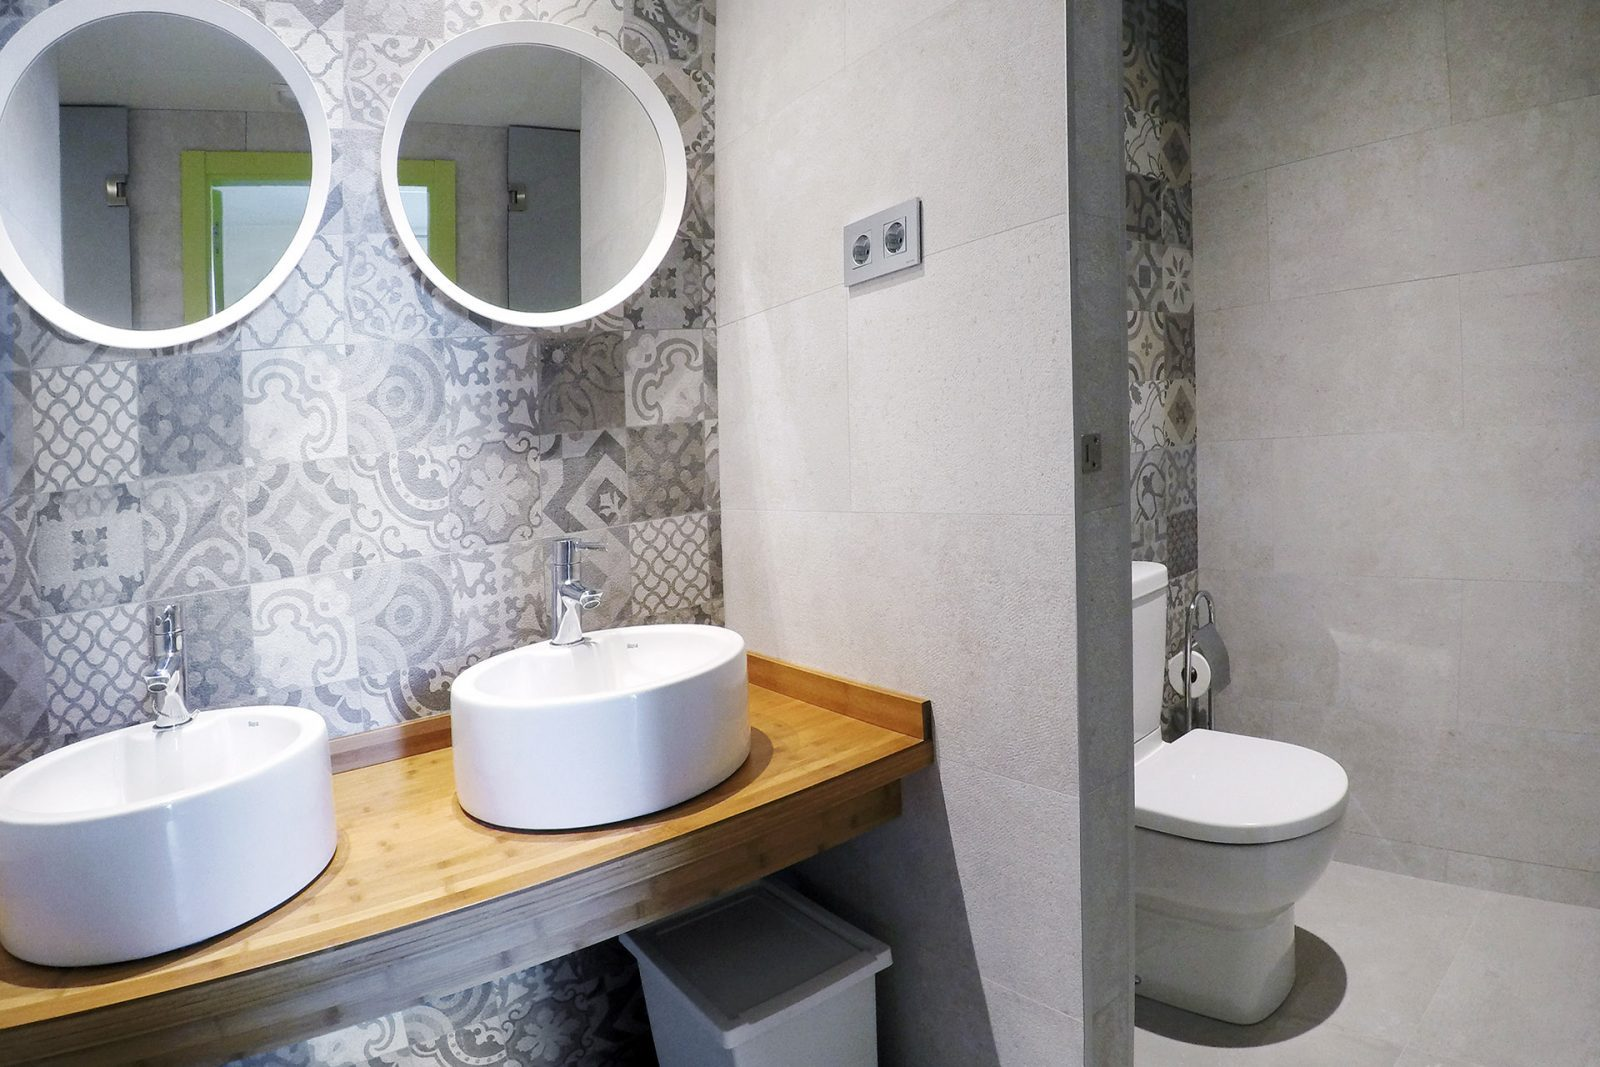 Bathroom in 6 bed female dormitory